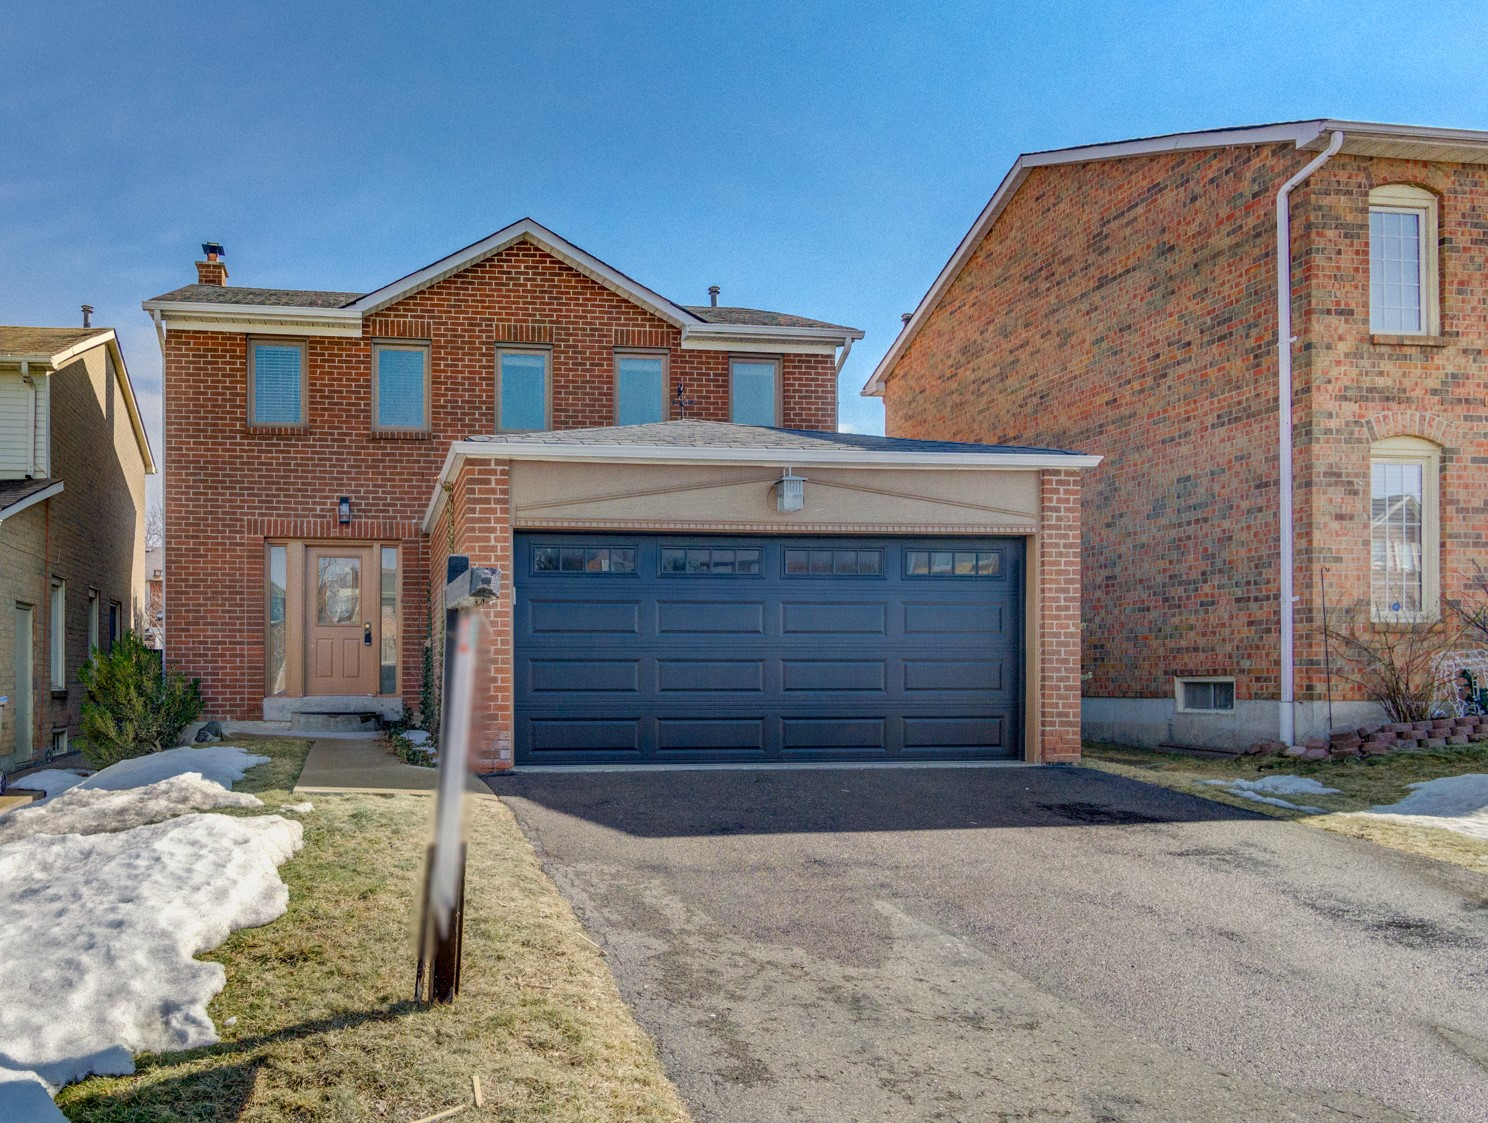 brampton-houses-for-sale-real-estate-brampton-homes